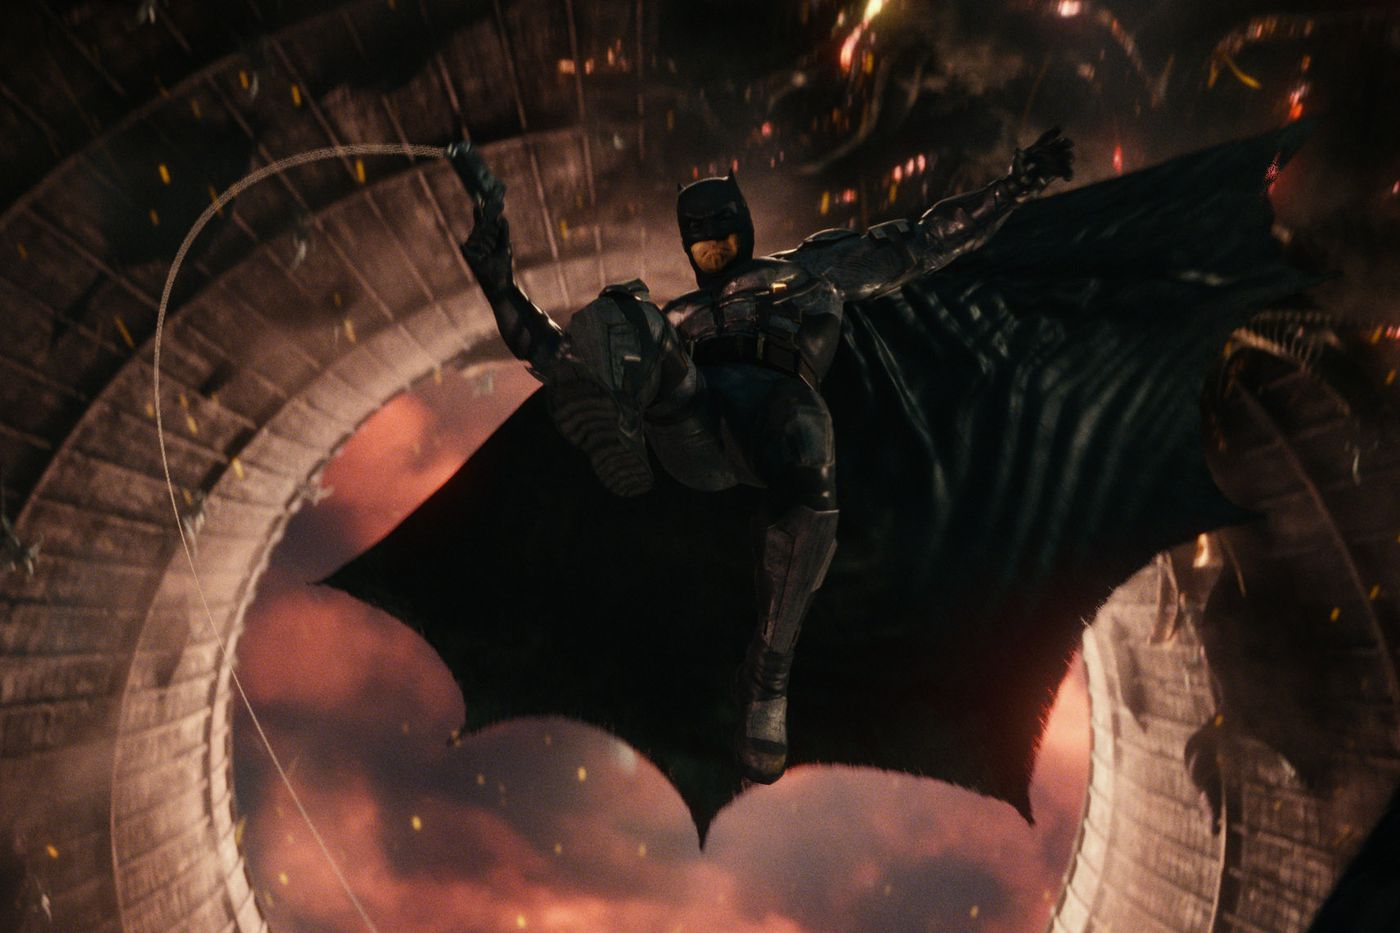 Justice League Snyder Cut theories rage despite info from Zack